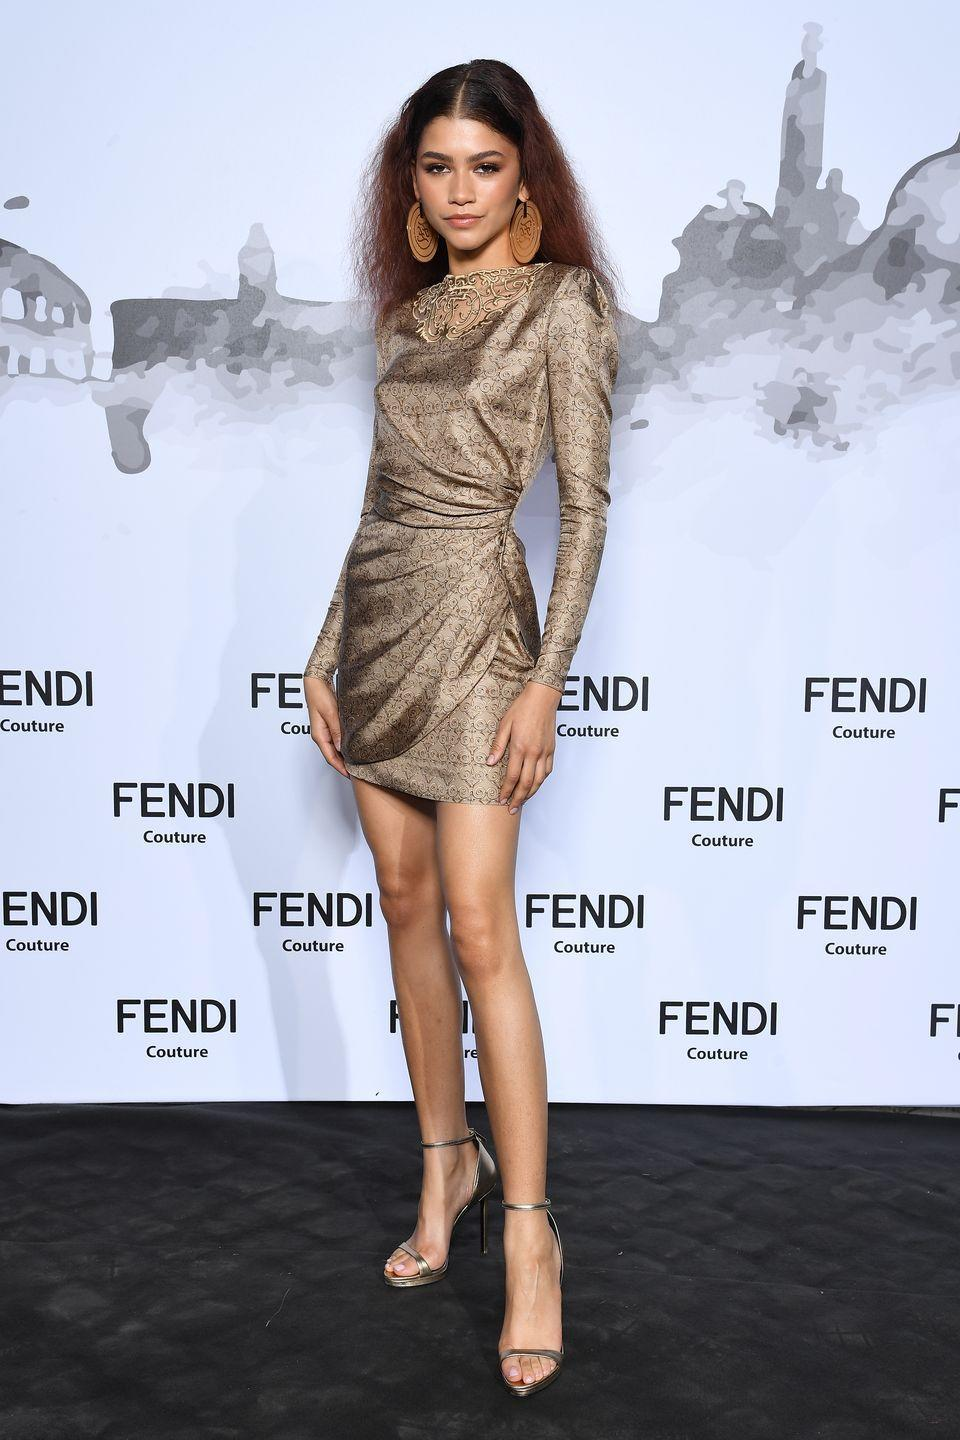 <p>Zendaya wore Fendi for the Fendi Couture show in Rome. </p>